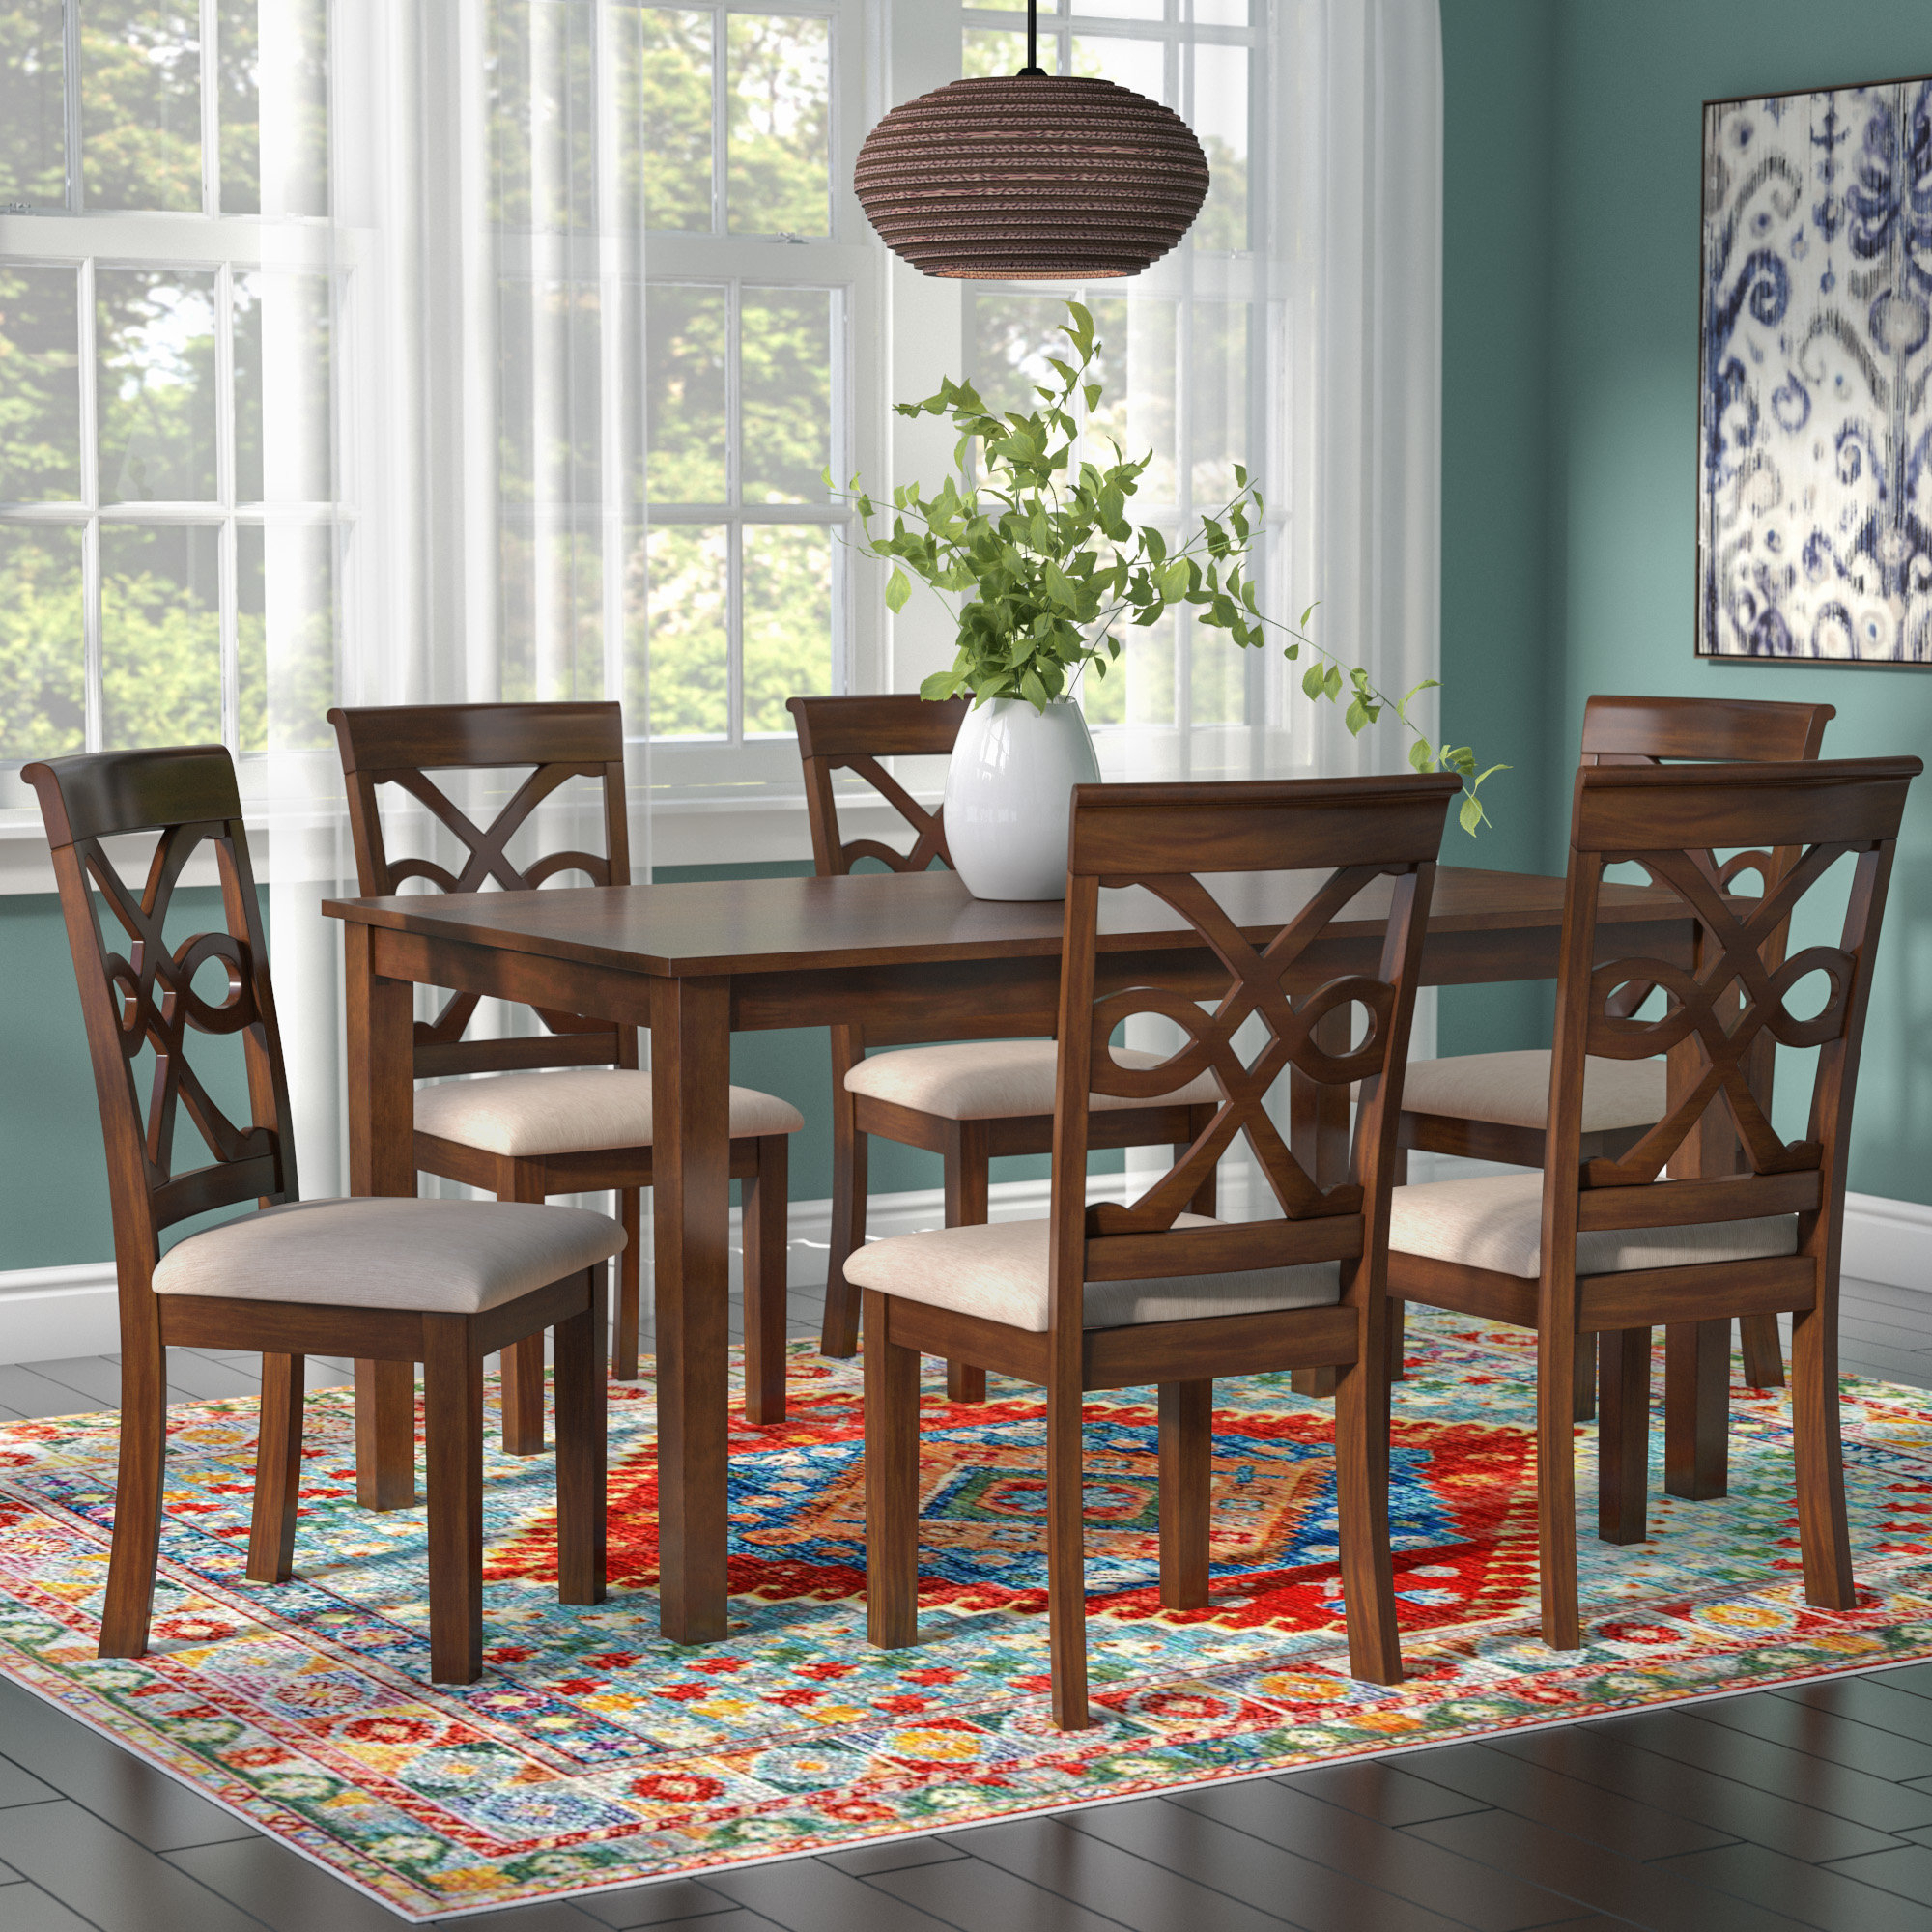 Laconia 7 Pieces Solid Wood Dining Sets (Set Of 7) Pertaining To Most Recently Released World Menagerie Duron 7 Piece Dining Set & Reviews (View 9 of 25)